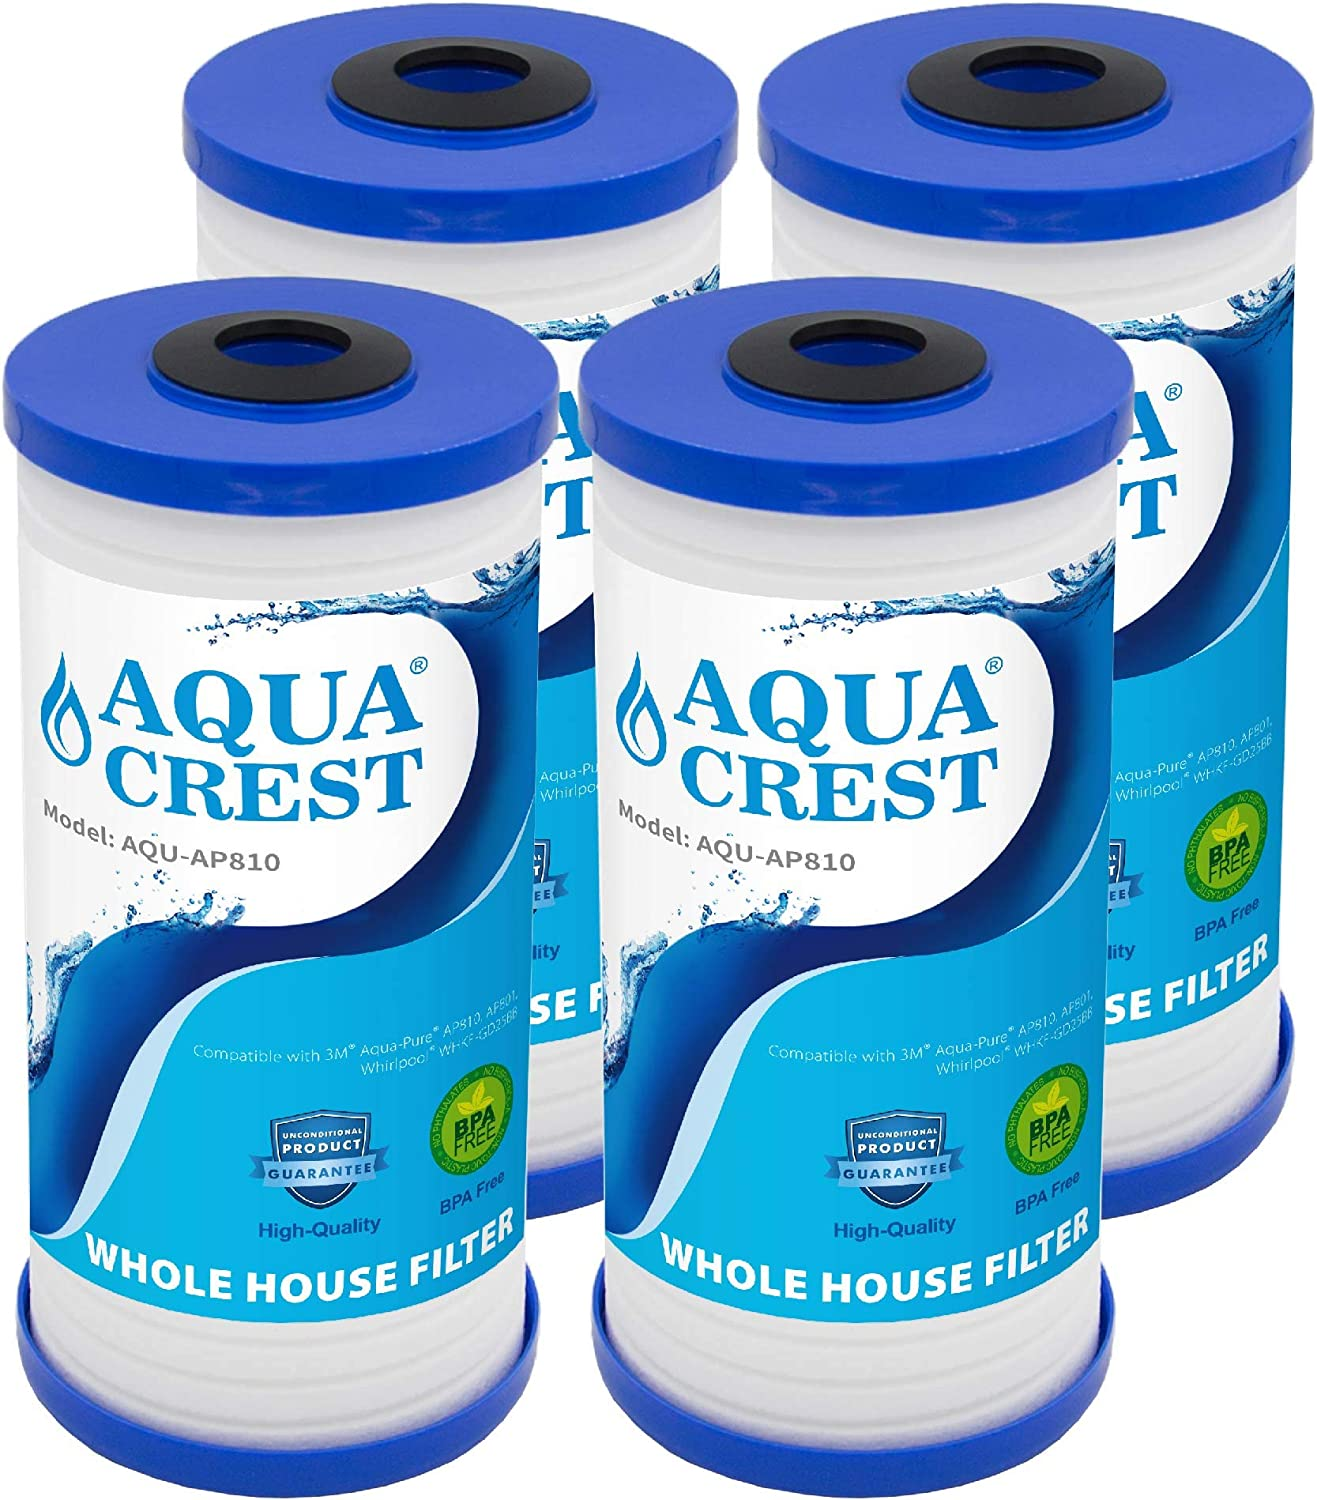 AQUACREST AP810 Whole House Water Filter, Compatible with 3M Aqua-Pure AP810, AP801, AP811, Whirlpool WHKF-GD25BB, Pack of 4